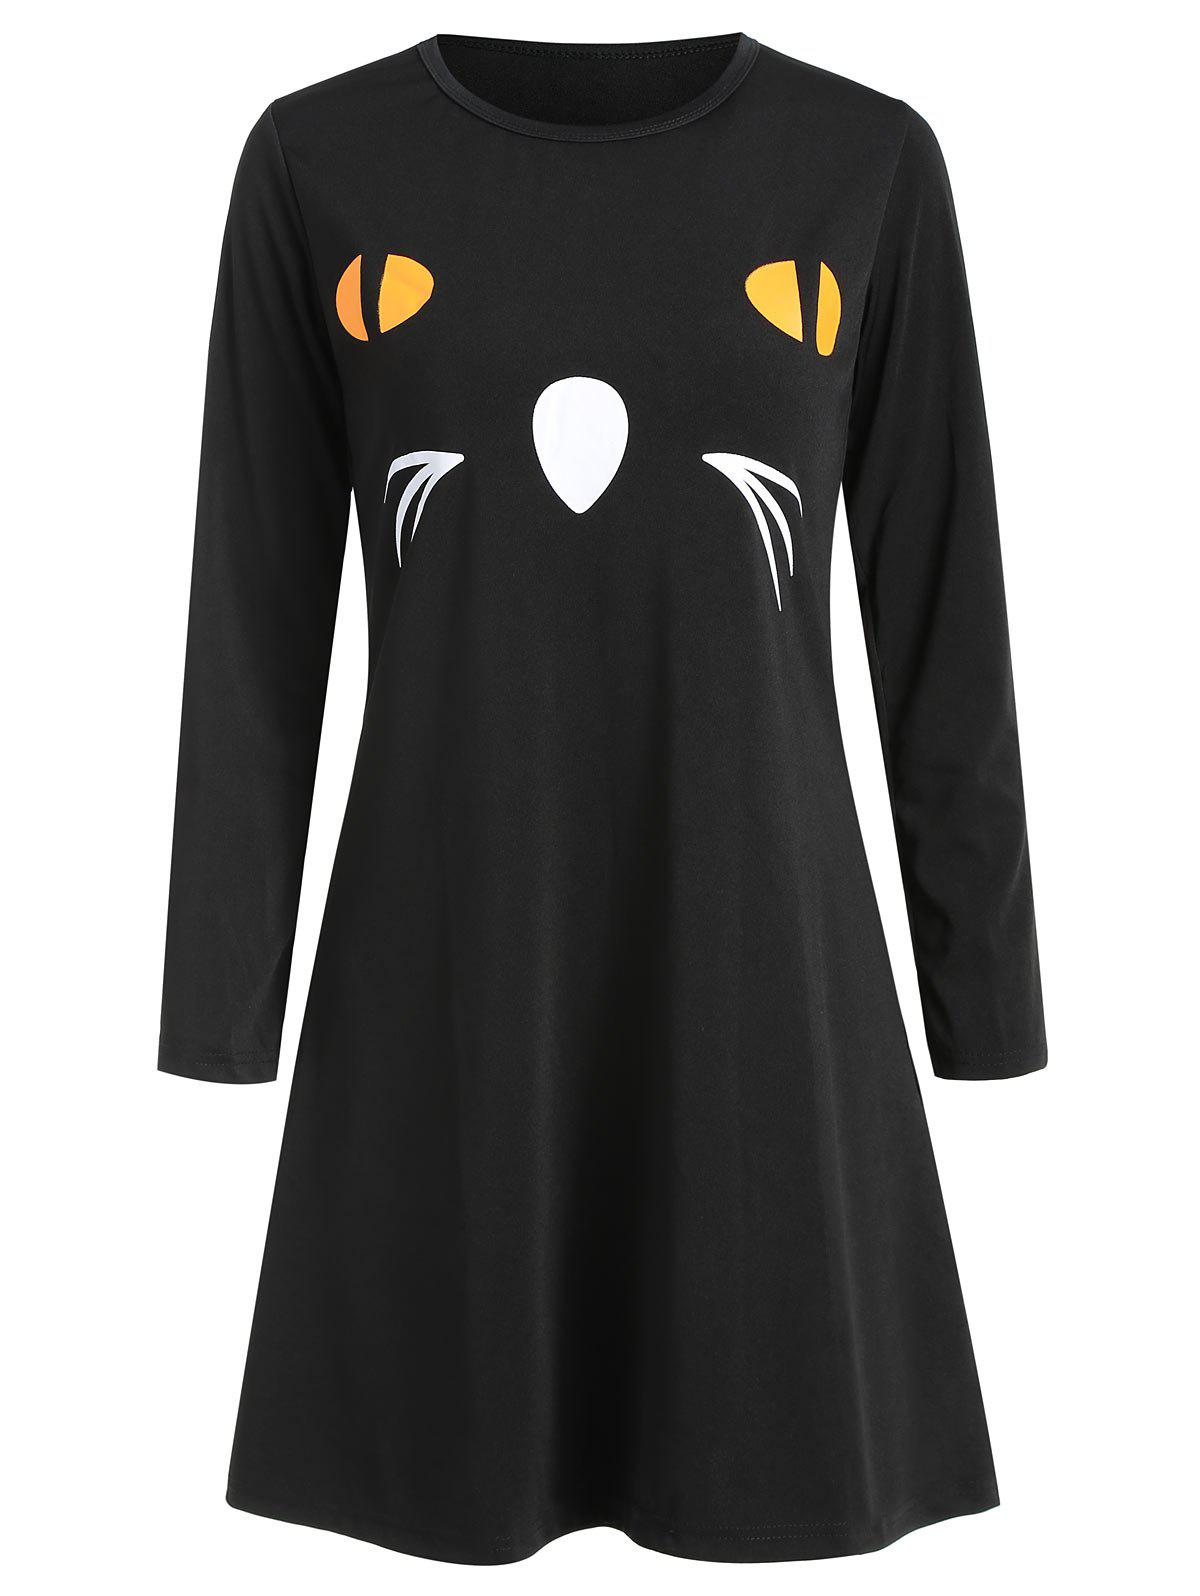 Women's Round Neck Long Sleeve Halloween Printing A-line Dress - NATURAL BLACK XL